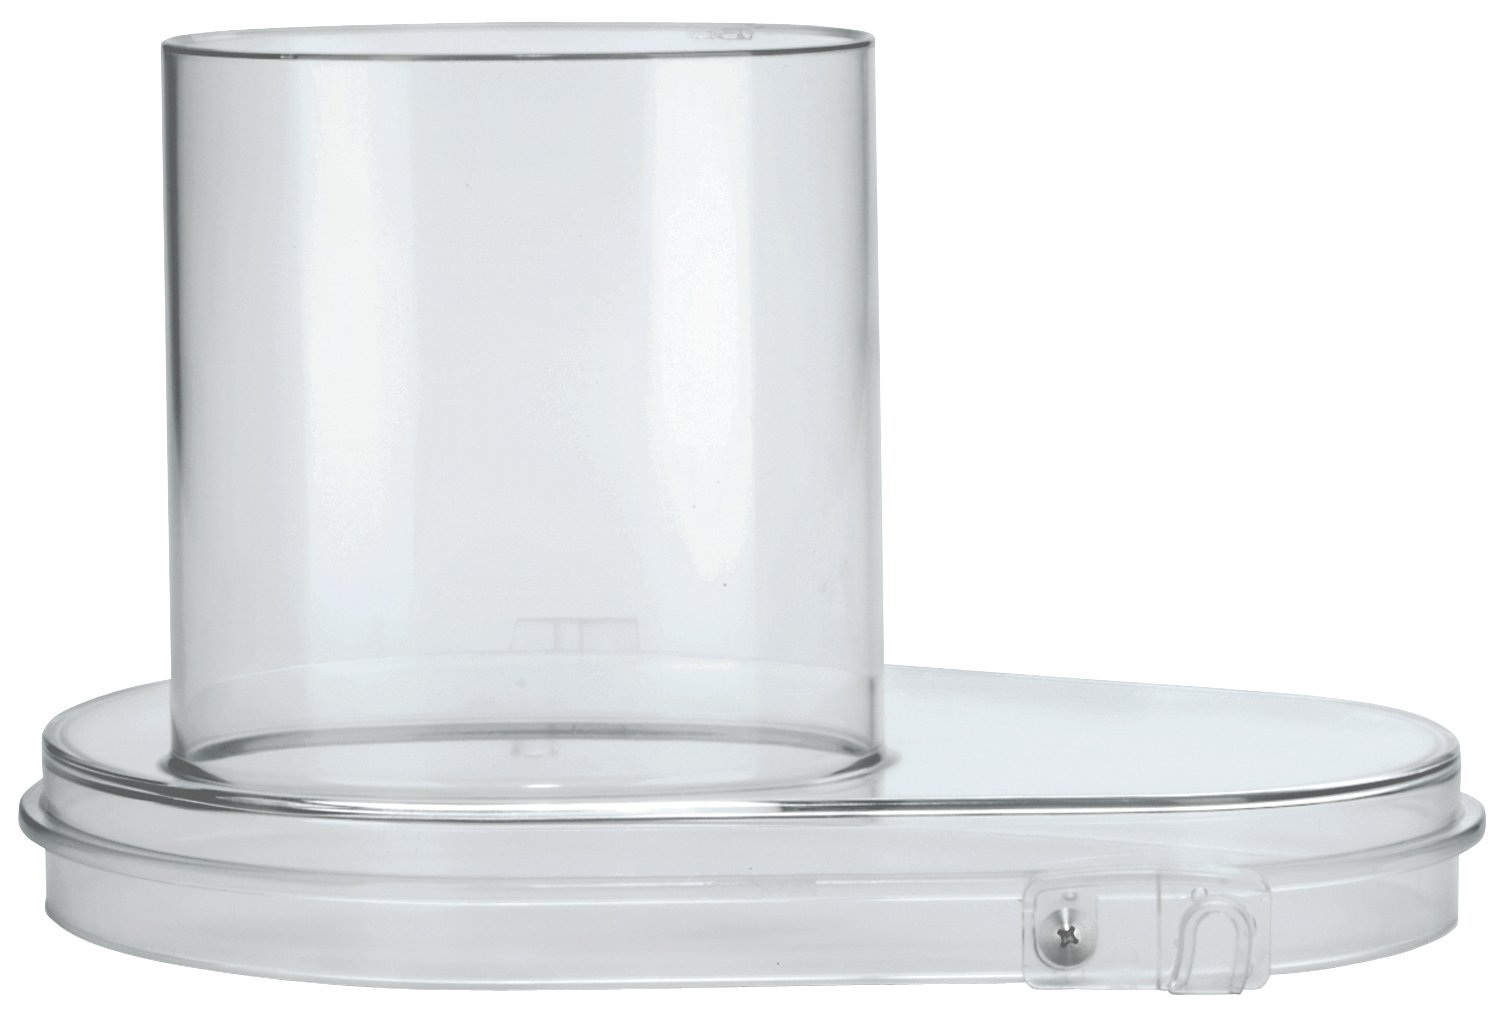 Waring Commercial FP258 Food Processor Continuous Feed Chute Cover by Waring [並行輸入品]   B003SO26PW